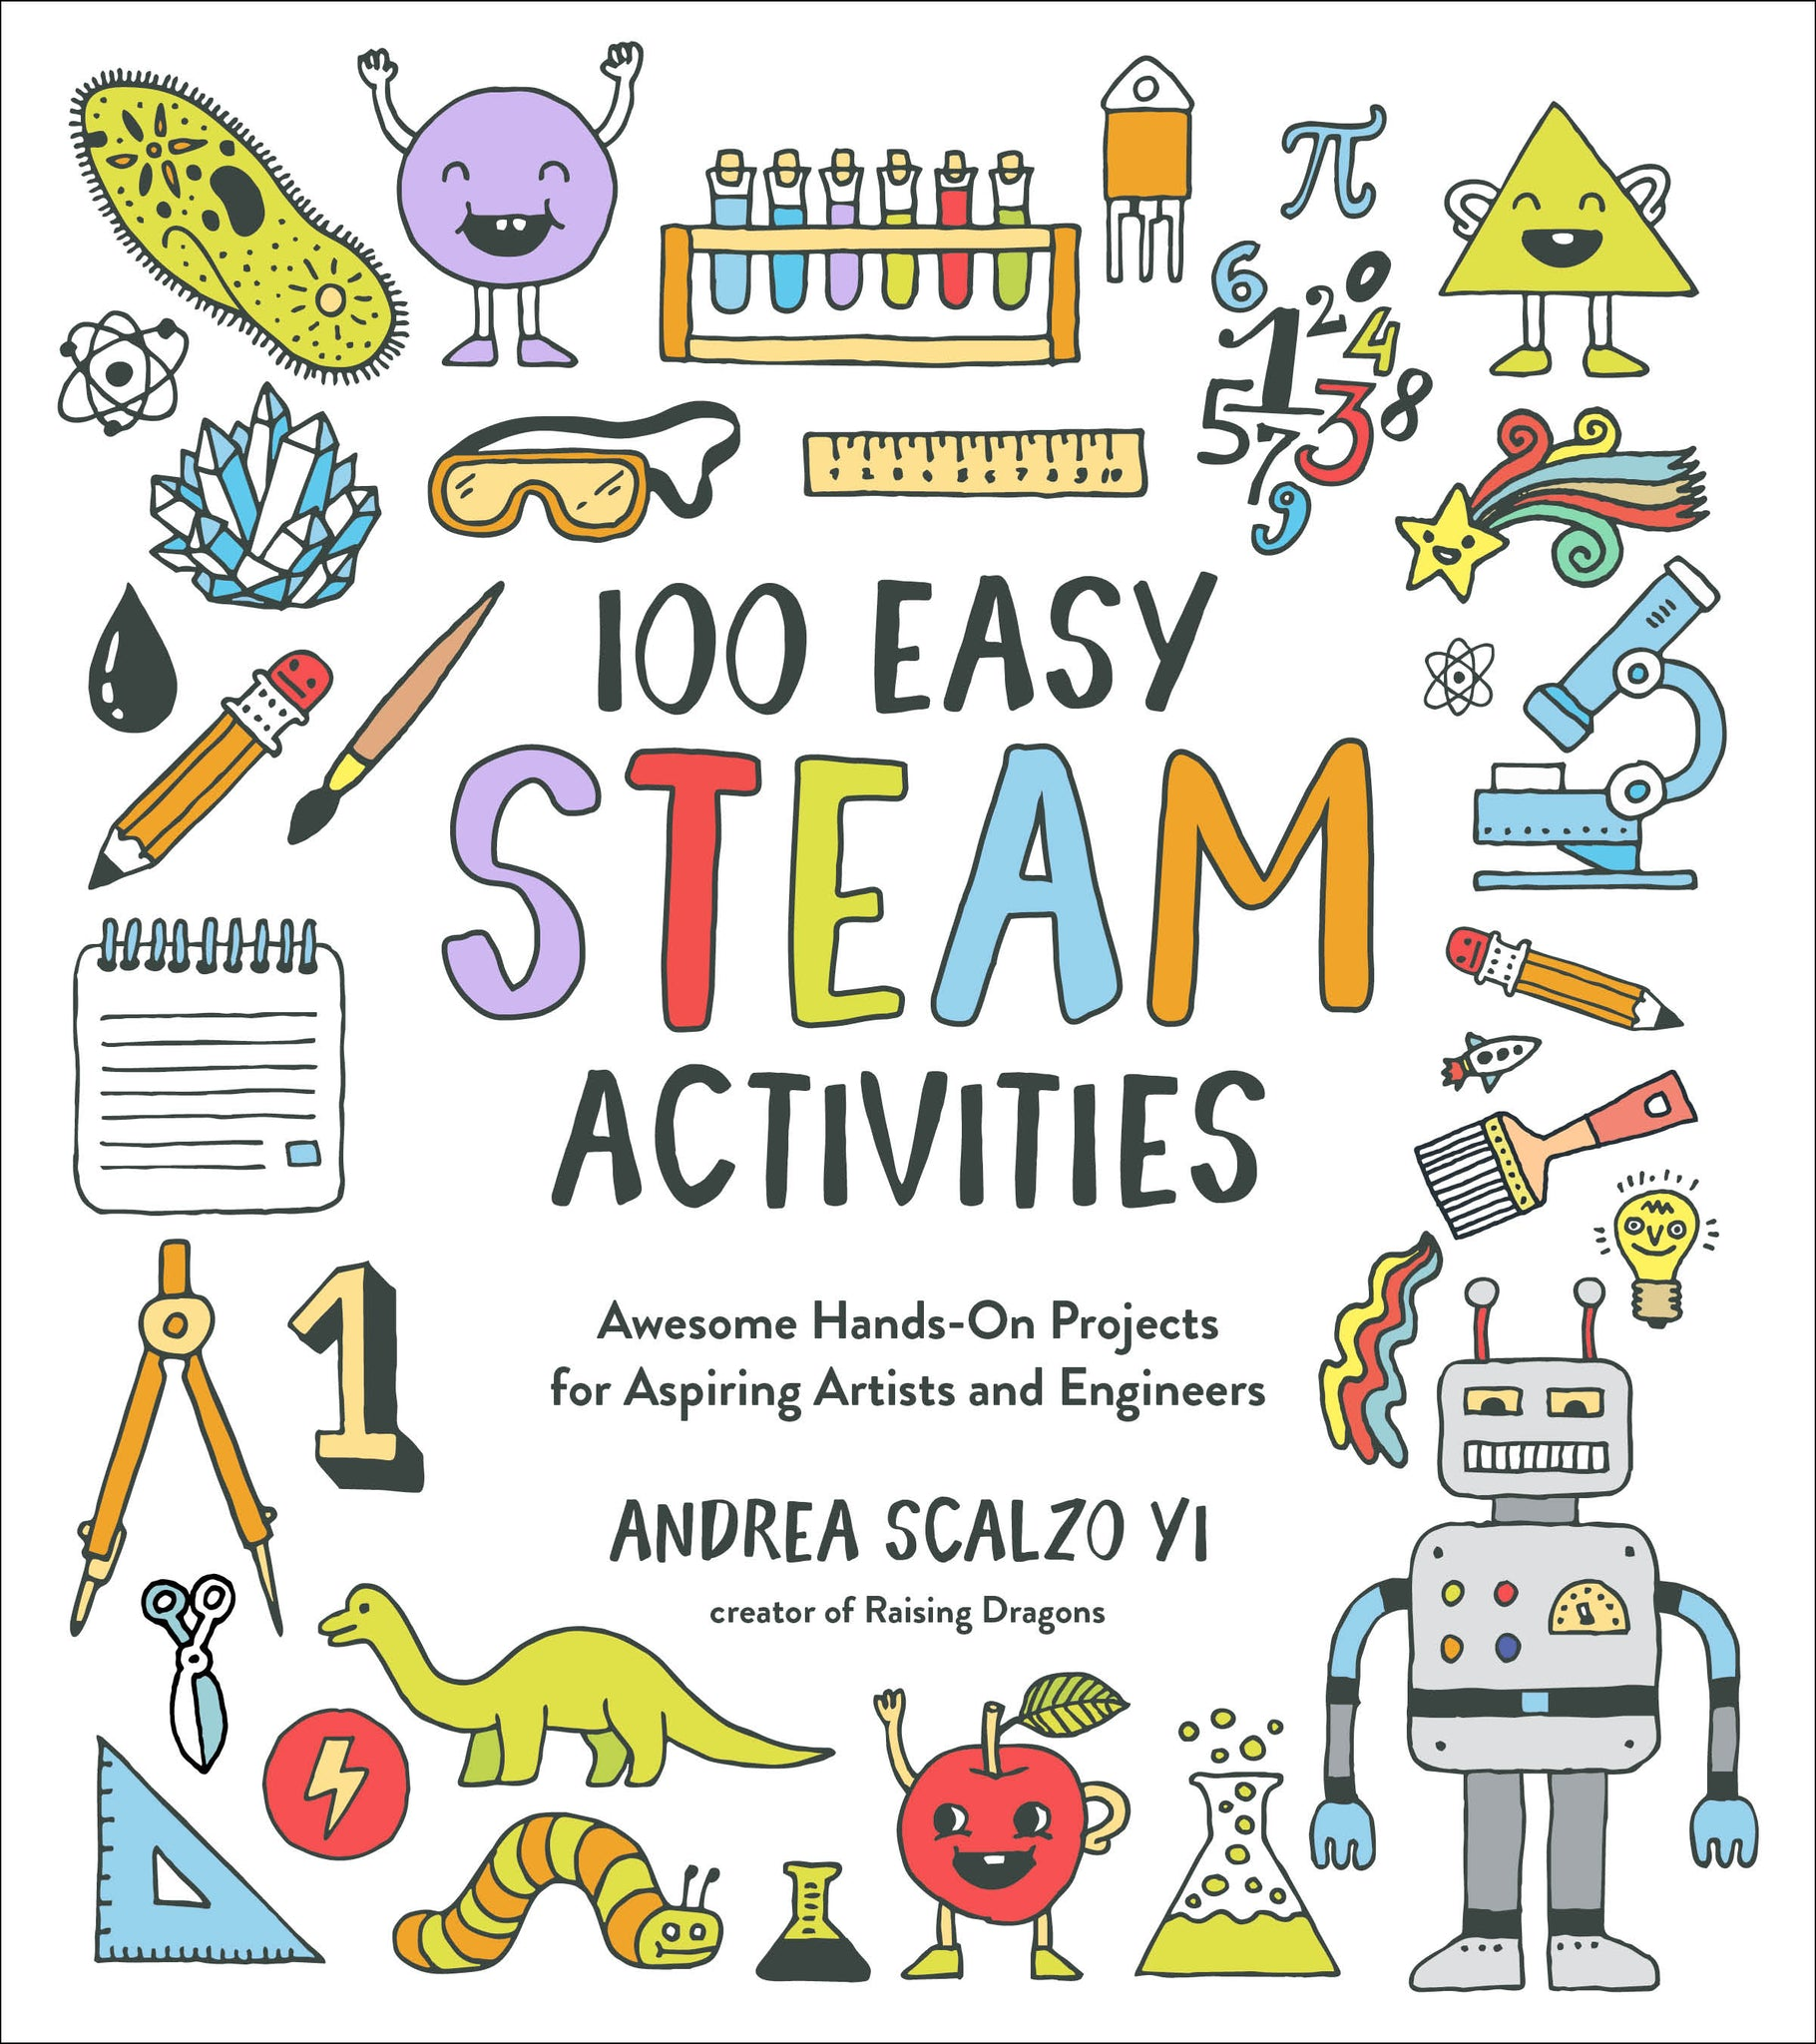 100 Easy STEAM Activities: Awesome Hands-On Projects for Aspiring Artists and Engineers